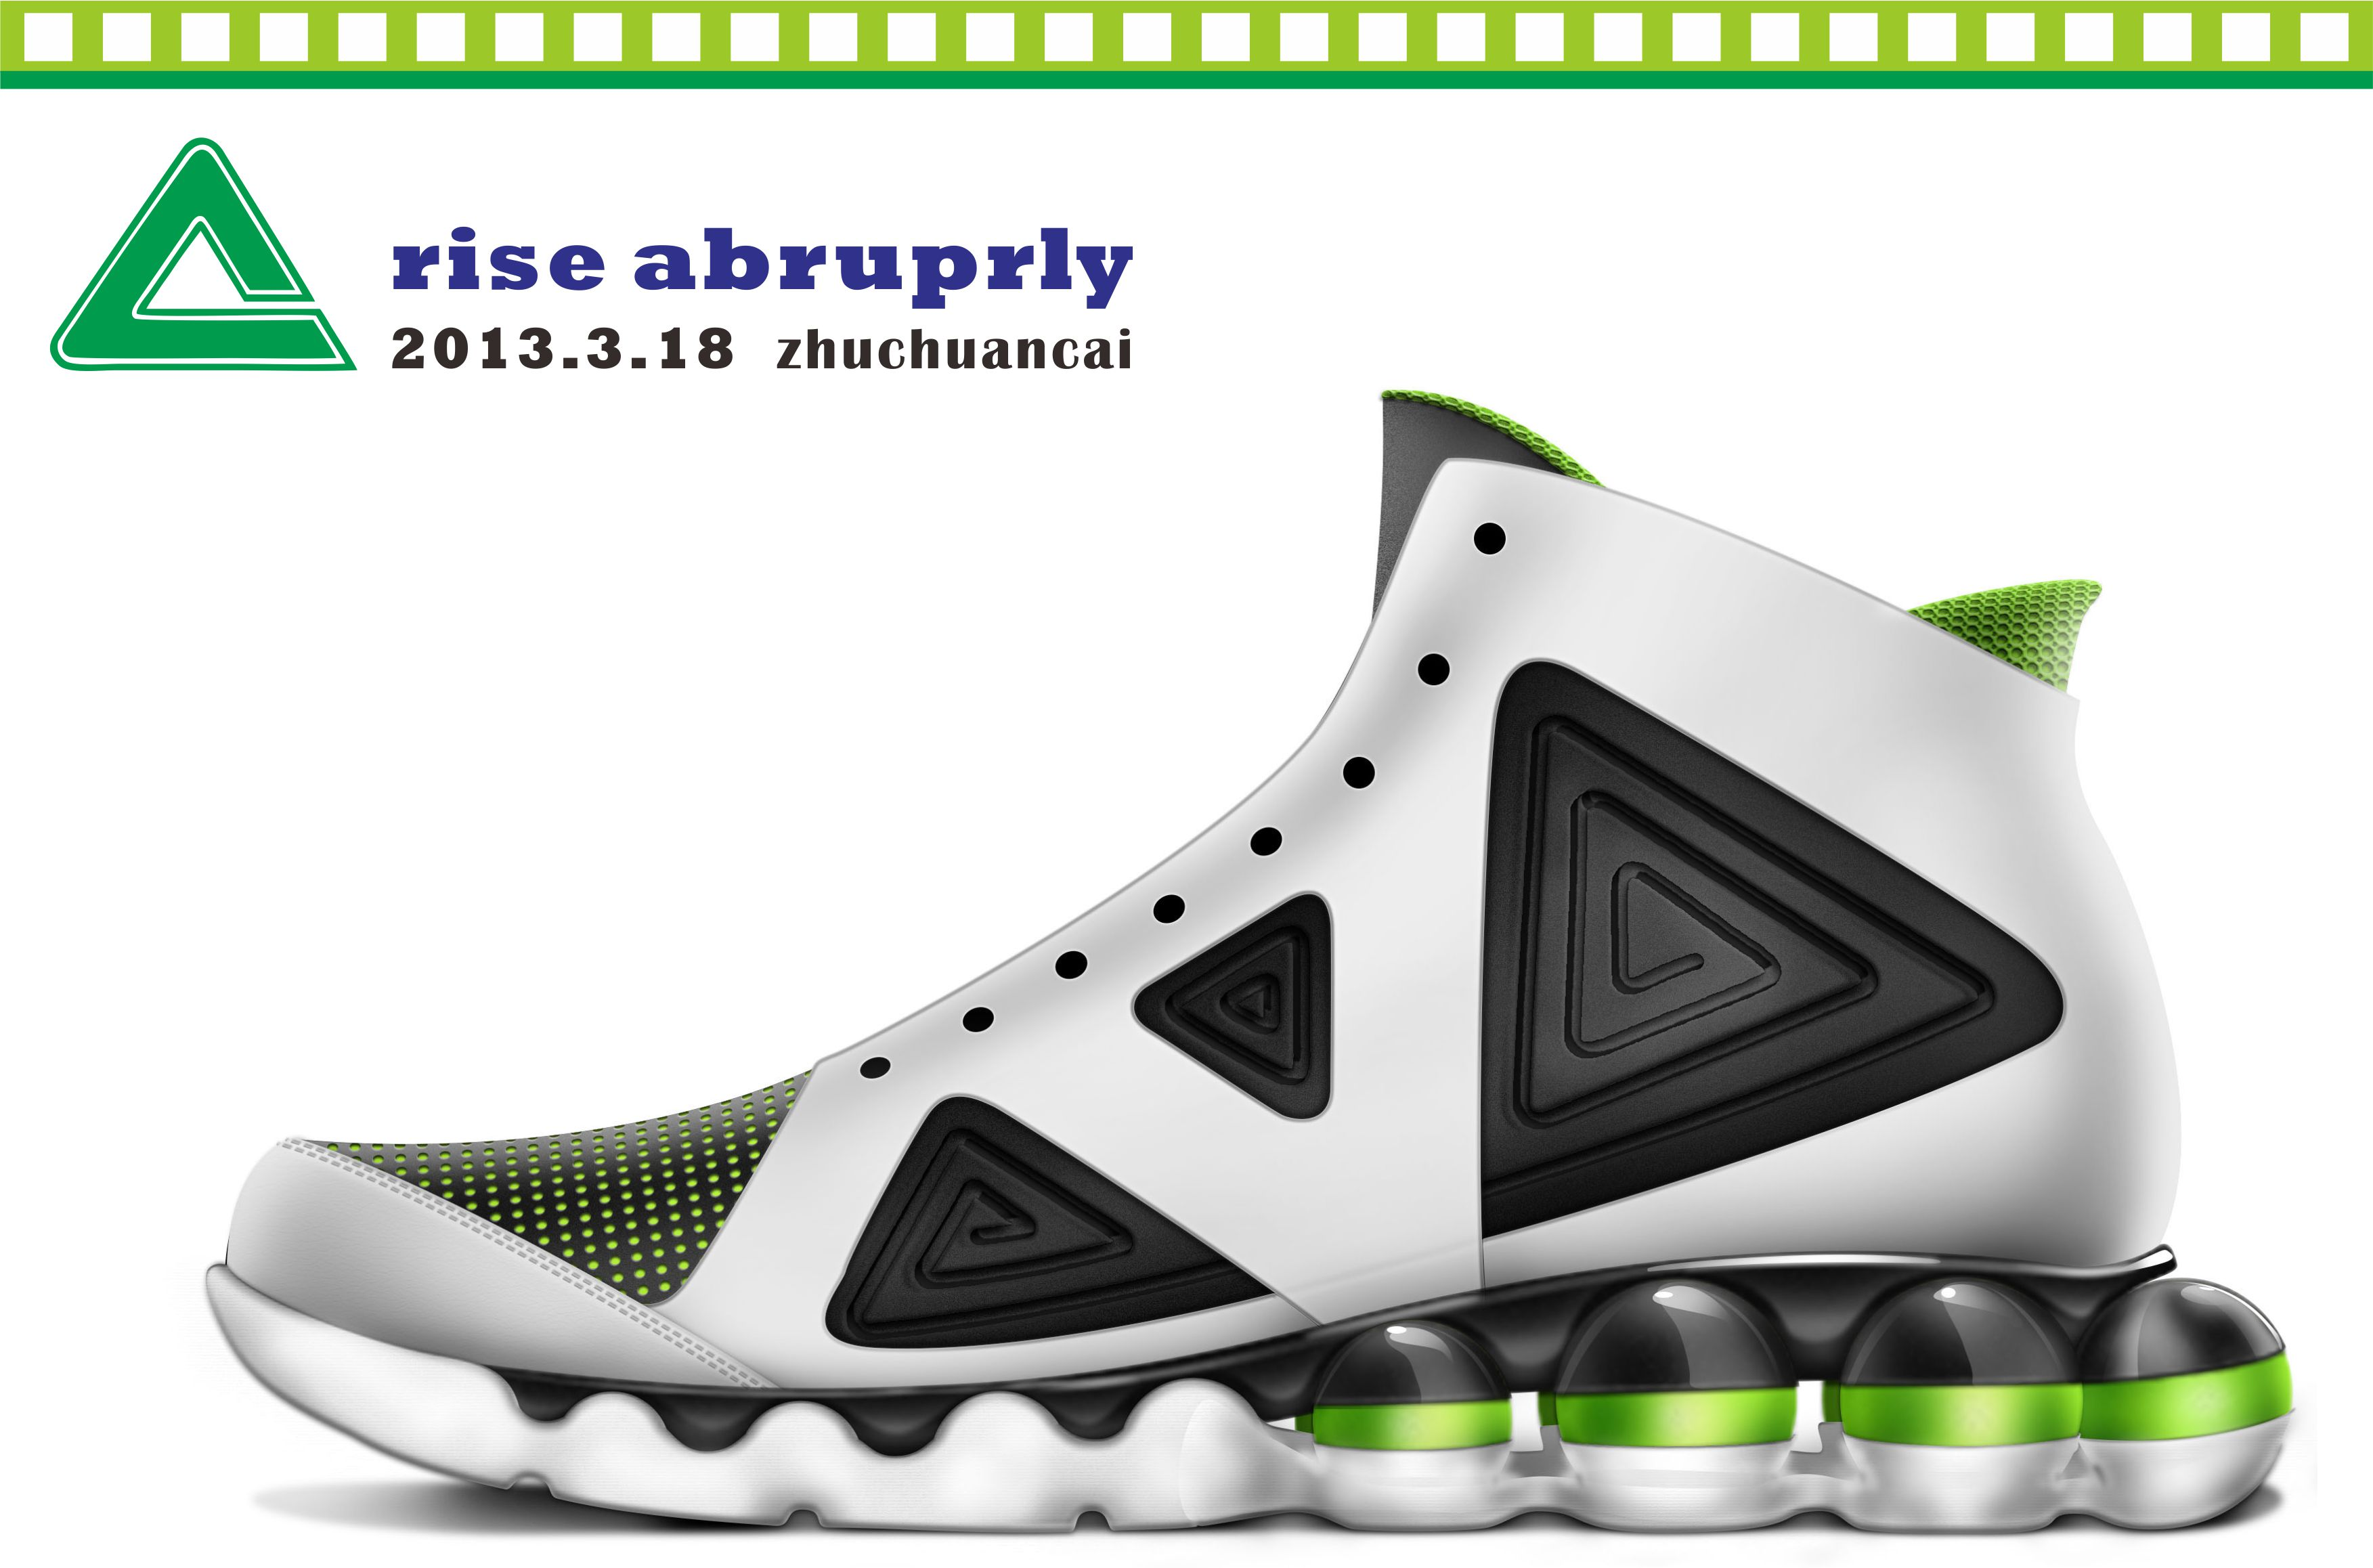 Design Basketball Shoes 28 Images Create Your Own Basketball Shoes Create Customize And